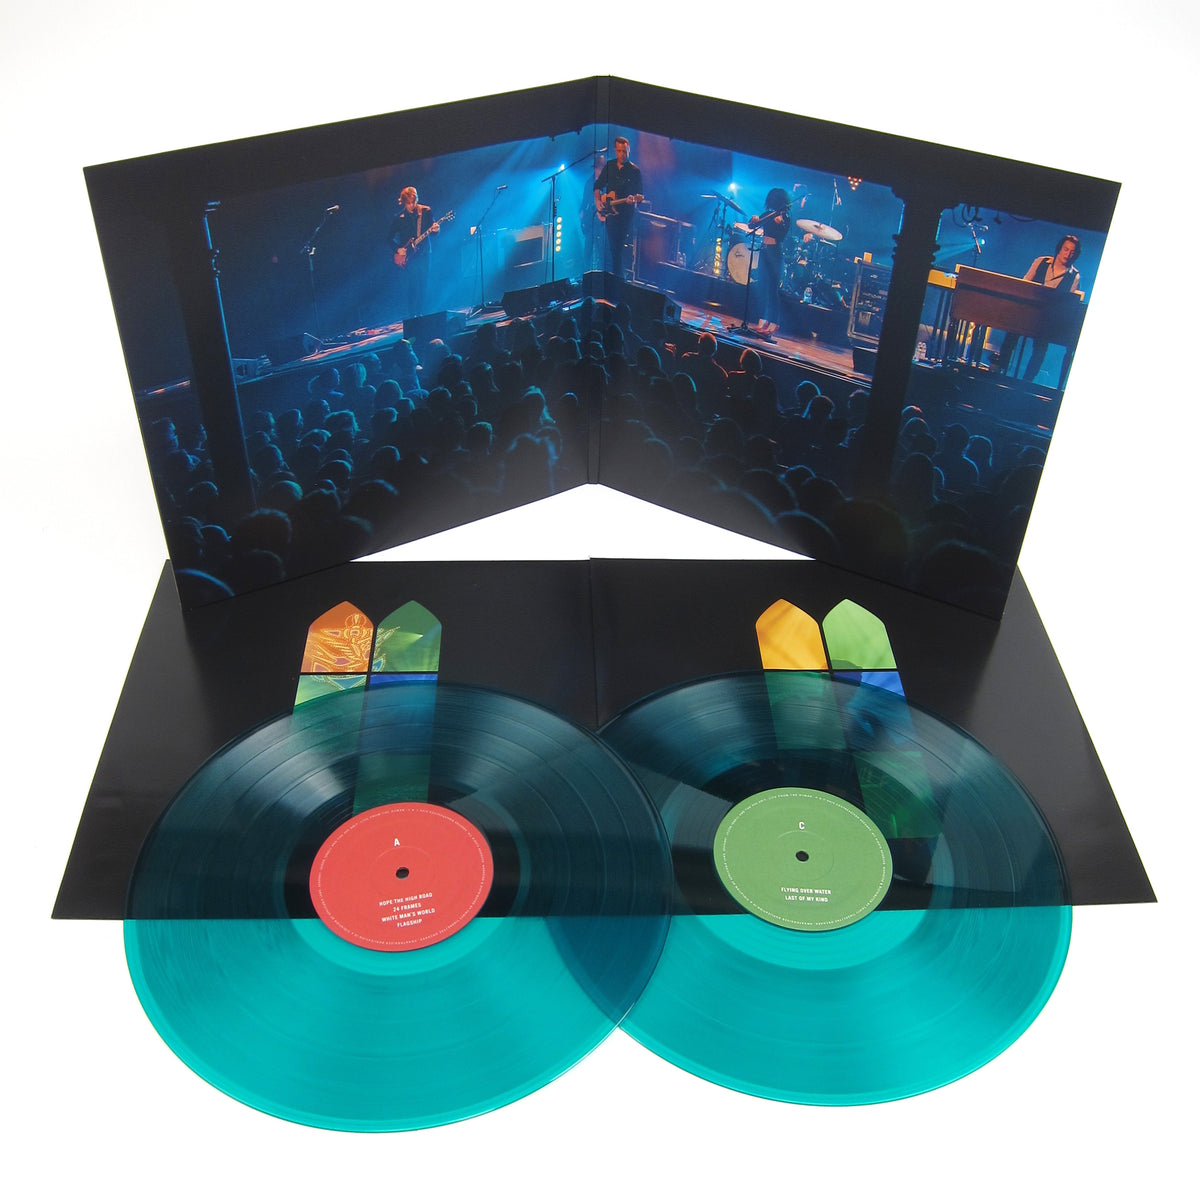 Jason Isbell: Live From The Ryman (Indie Exclusive Colored Vinyl) Vinyl LP